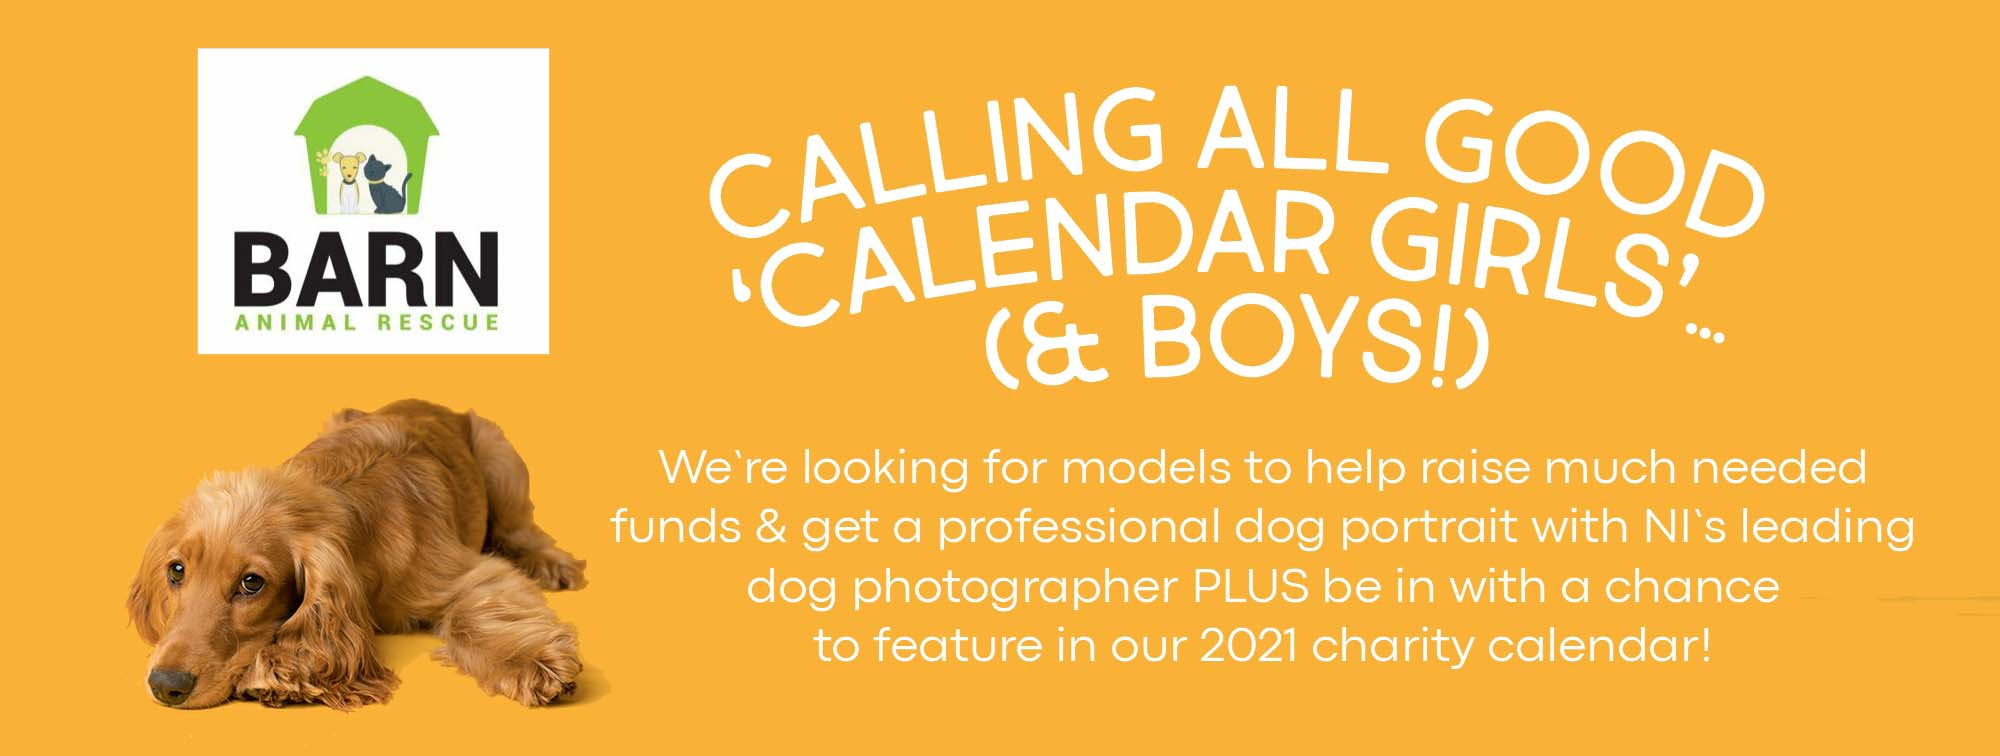 Charity Calendar Dog Photo Shoot in aid of The Barn Animal Rescue